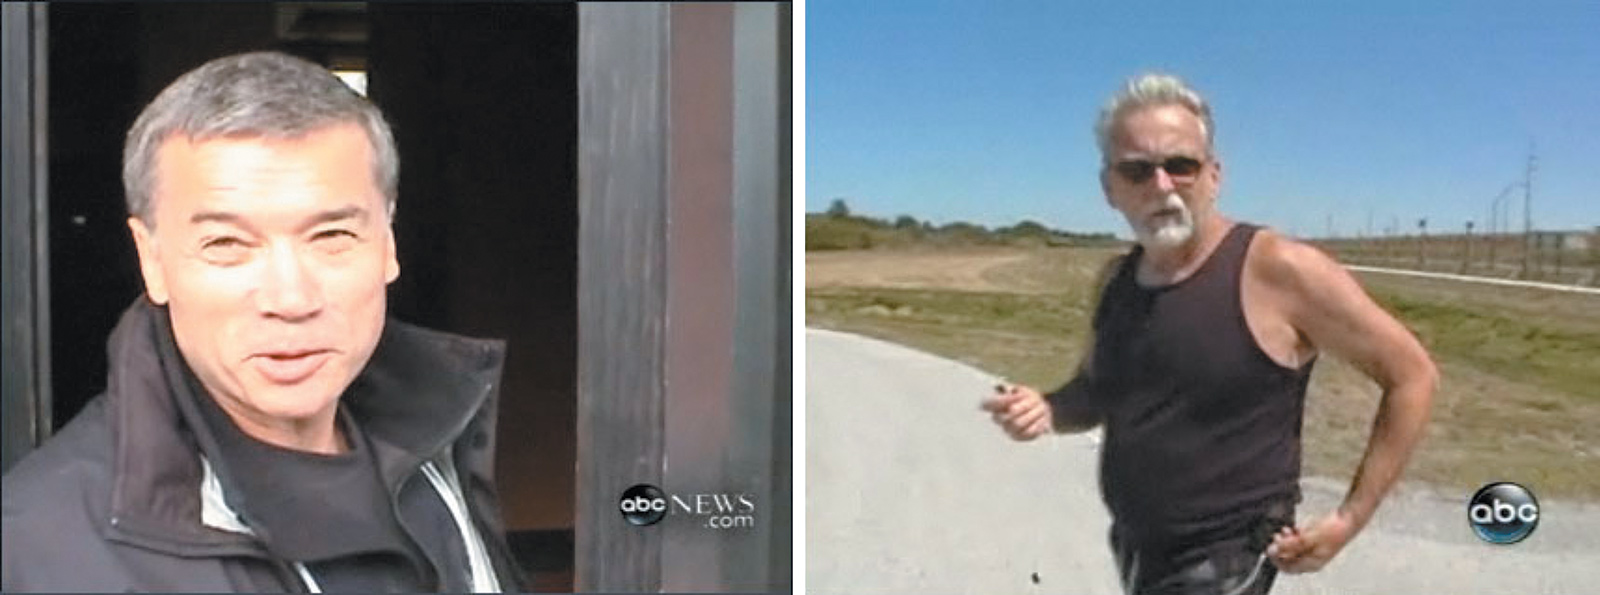 'The CIA contracted Bruce Jessen, left, and James Mitchell to design, lead, and direct harsh interrogations of a Qaeda operative,' The New York Times wrote of the two psychologists in December 2014. 'The men are pictured in images from ABC News.'